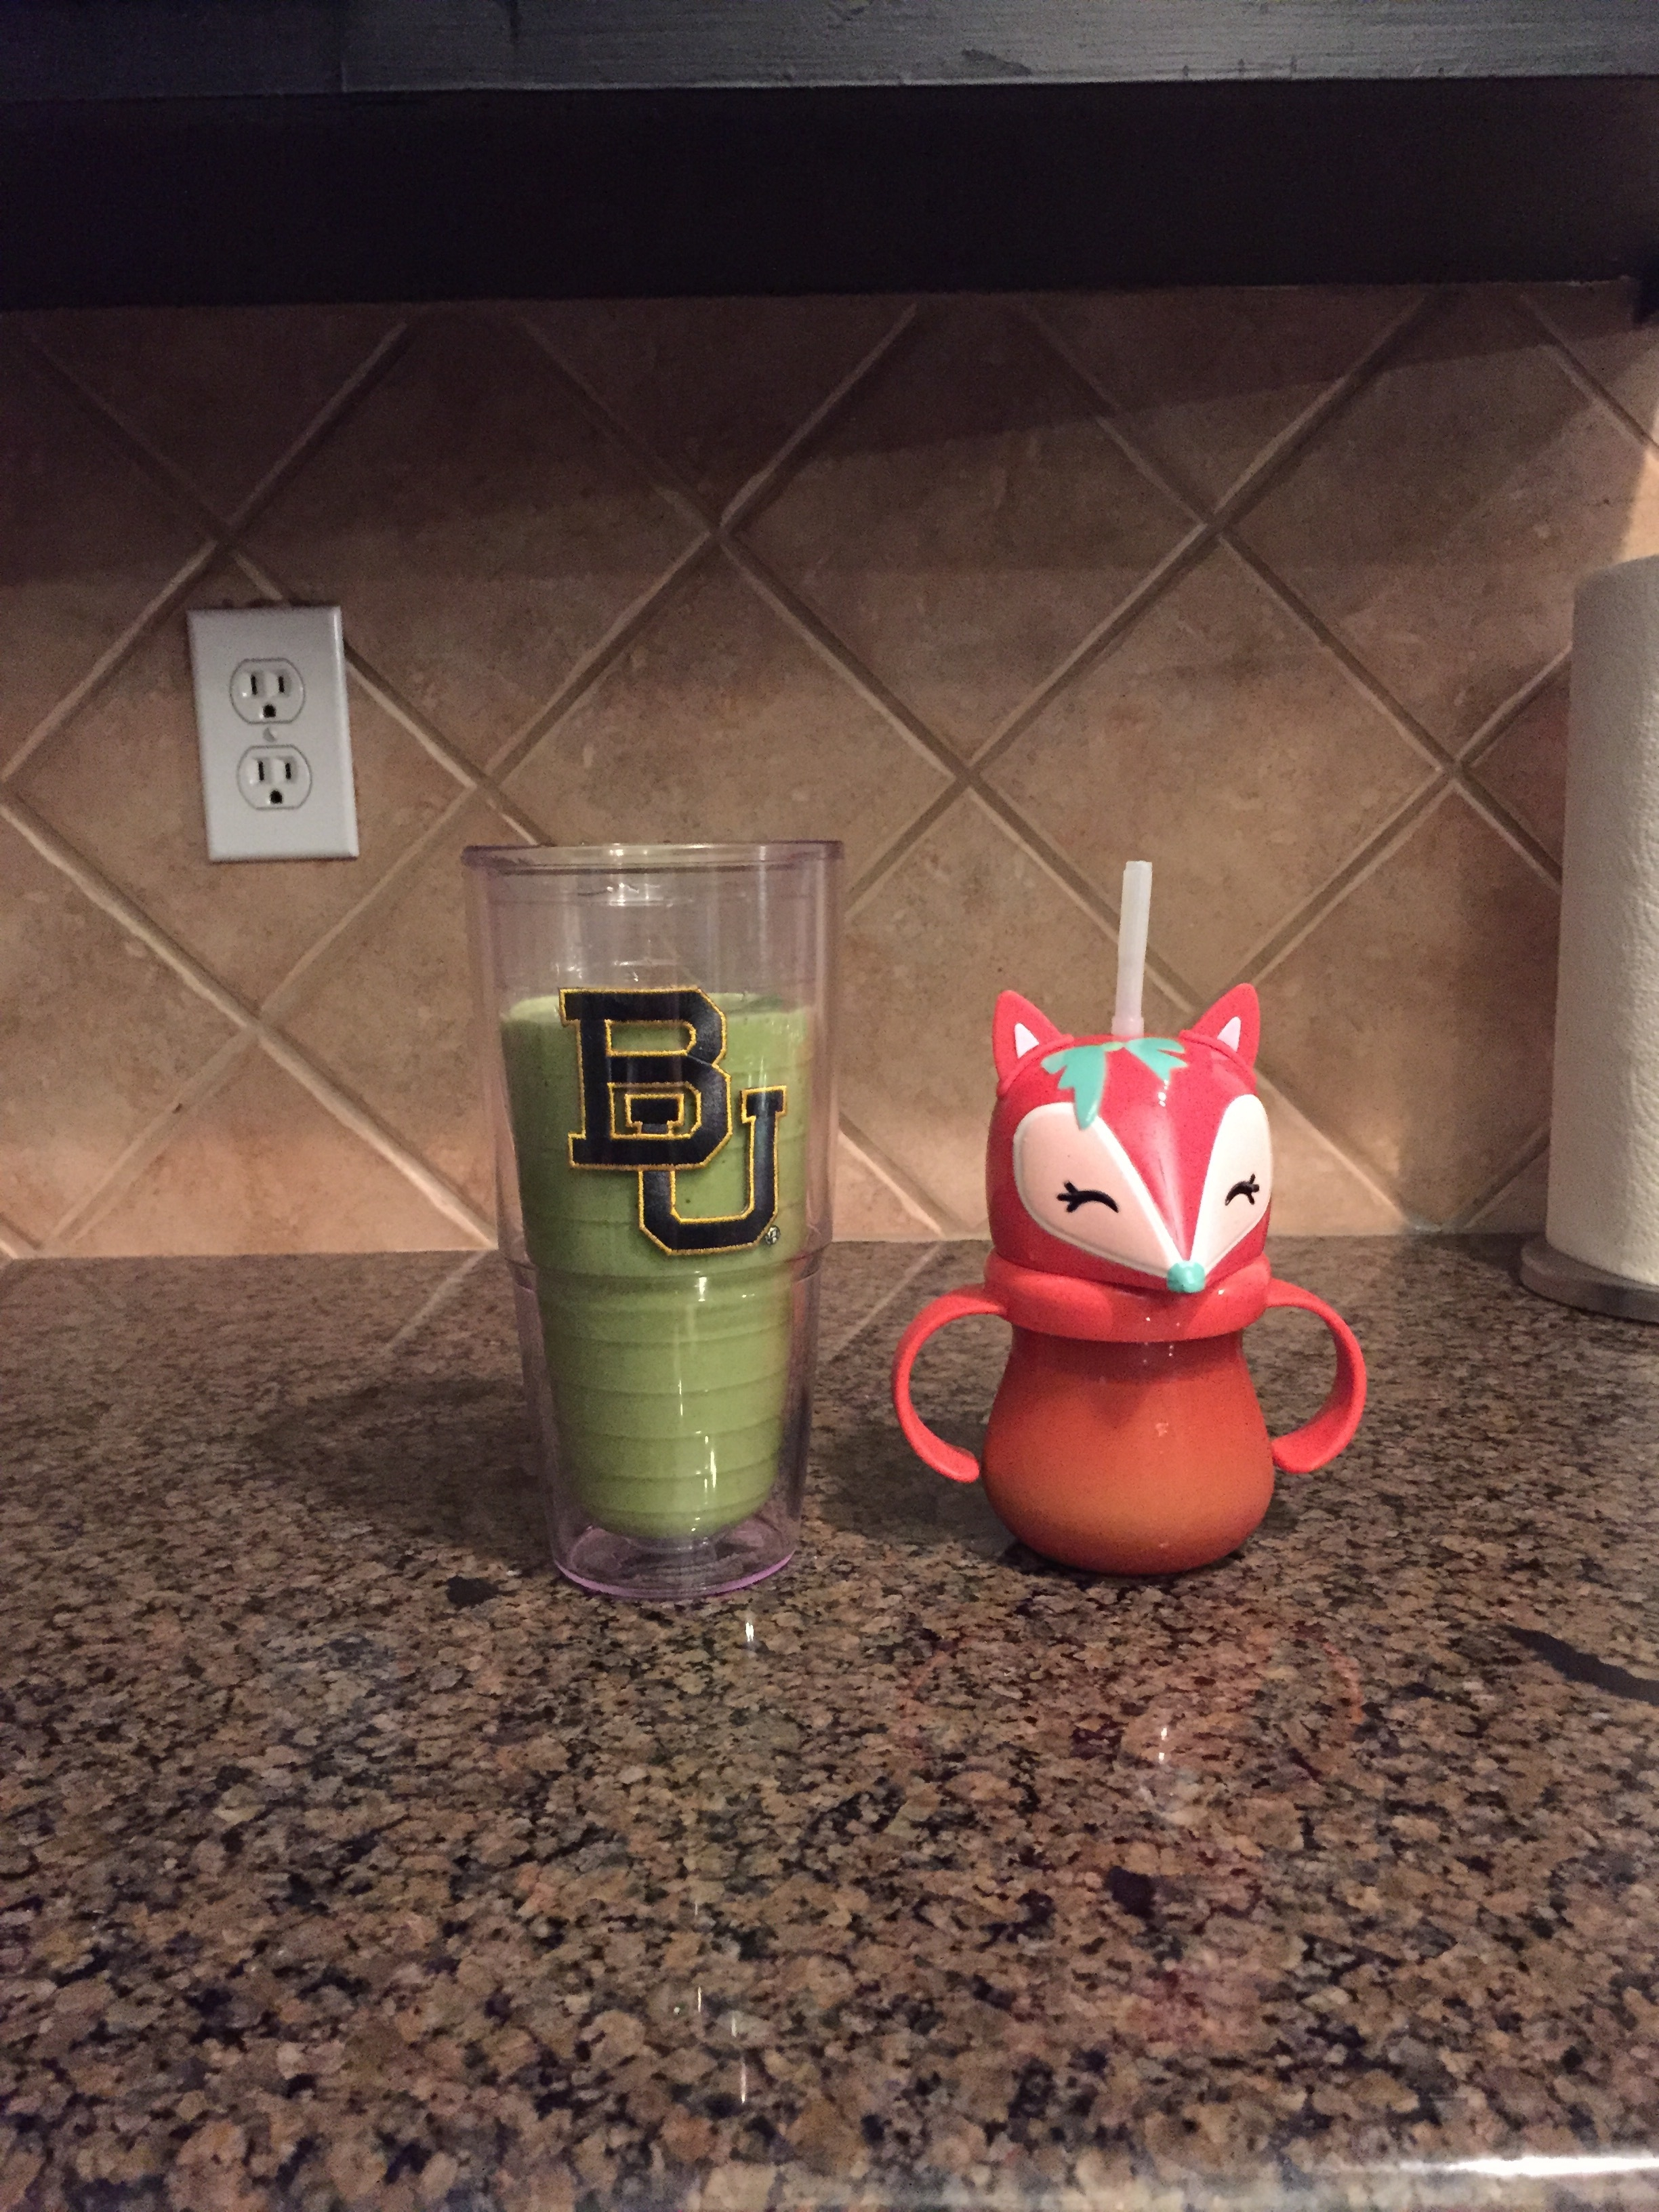 This was the first smoothie picture I ever took in September 2015.